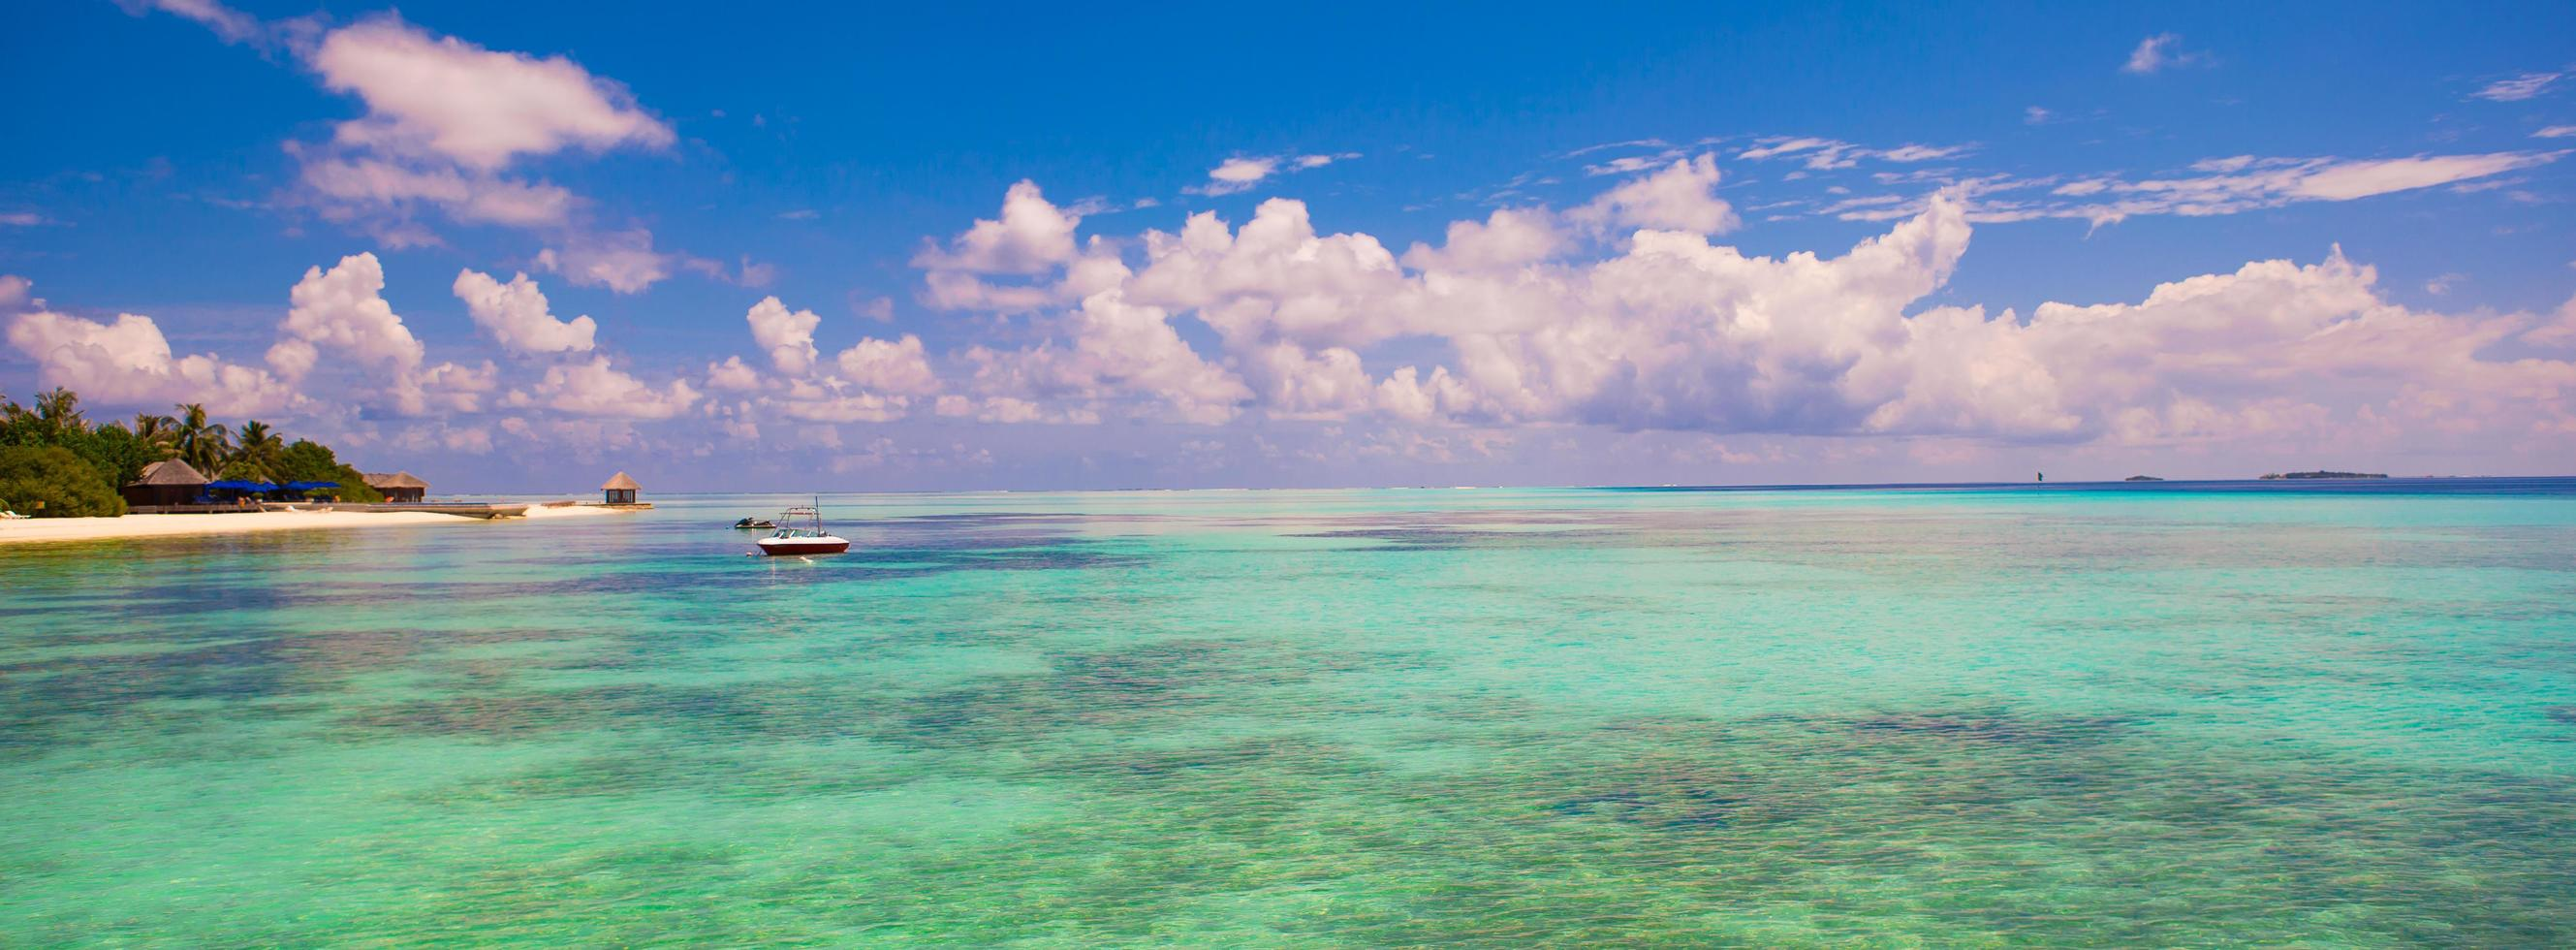 Maldives, South Asia, 2020 - Boat in the water near a tropical resort photo